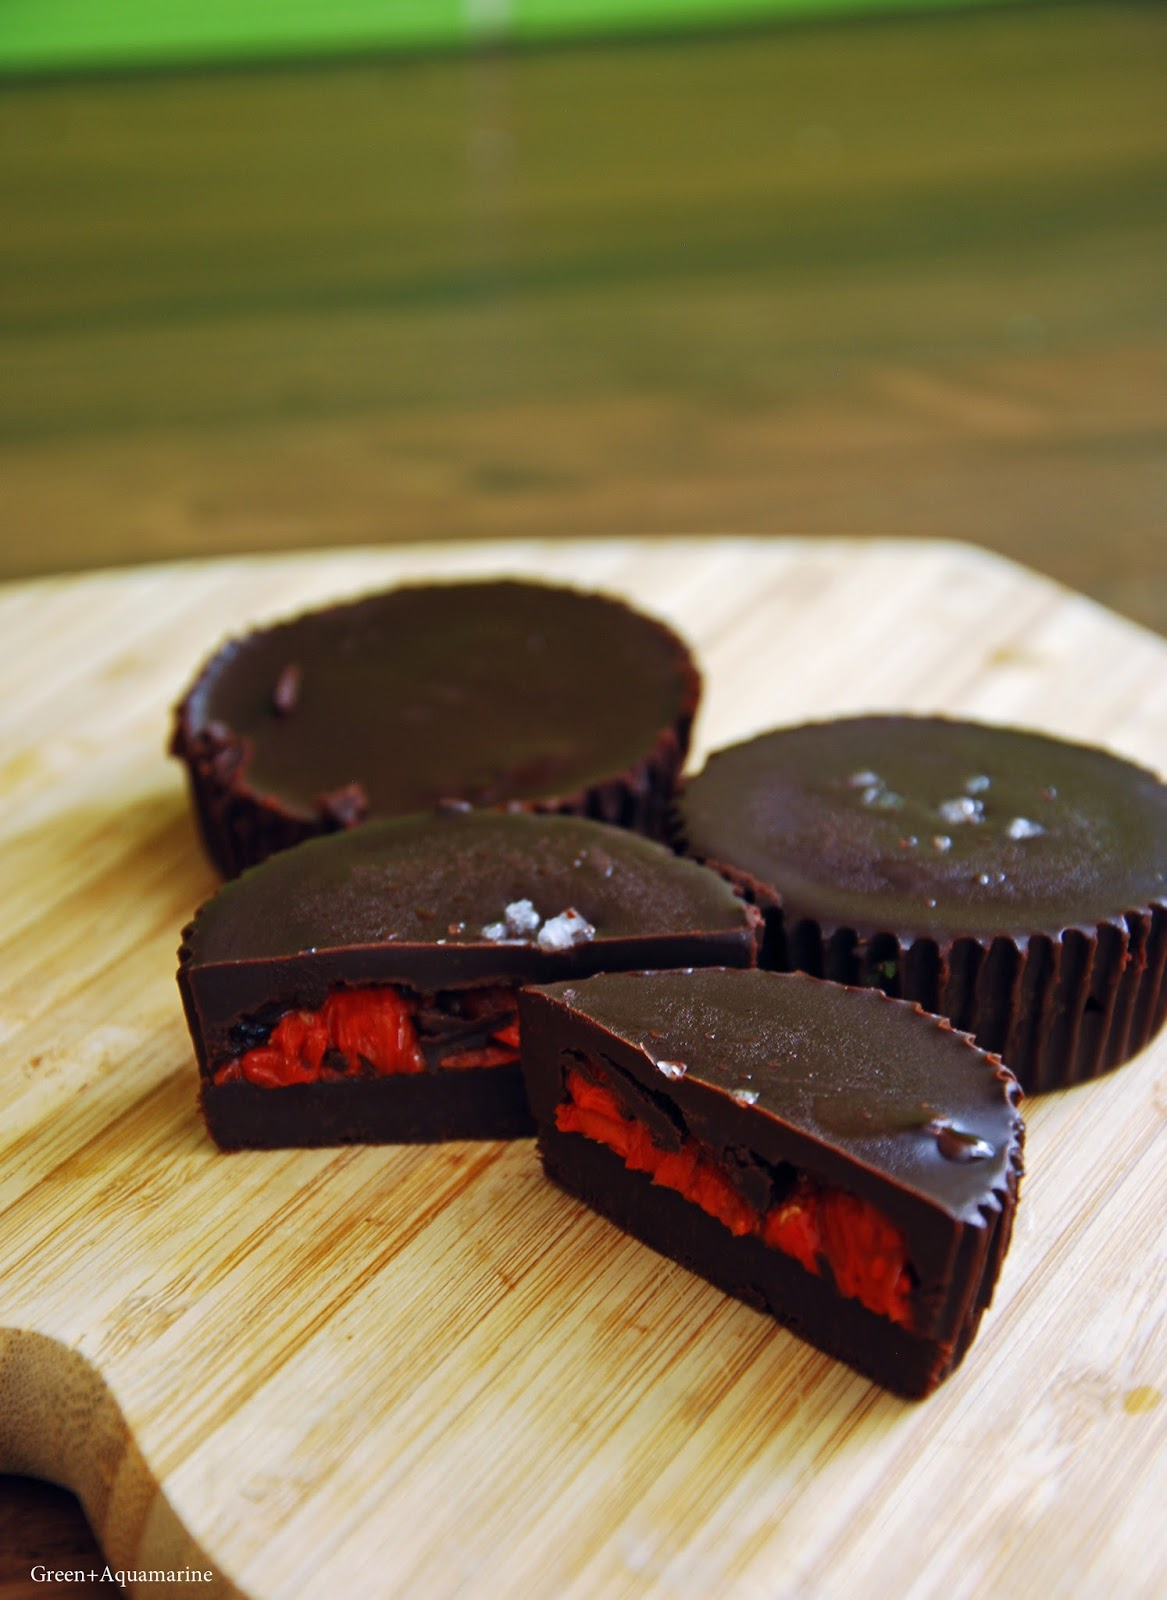 Want to try peanut butter cups and a few variations? I have three healthy recipes for you! Try nut butter cups, tahini or goji berries. Via @eleanormayc